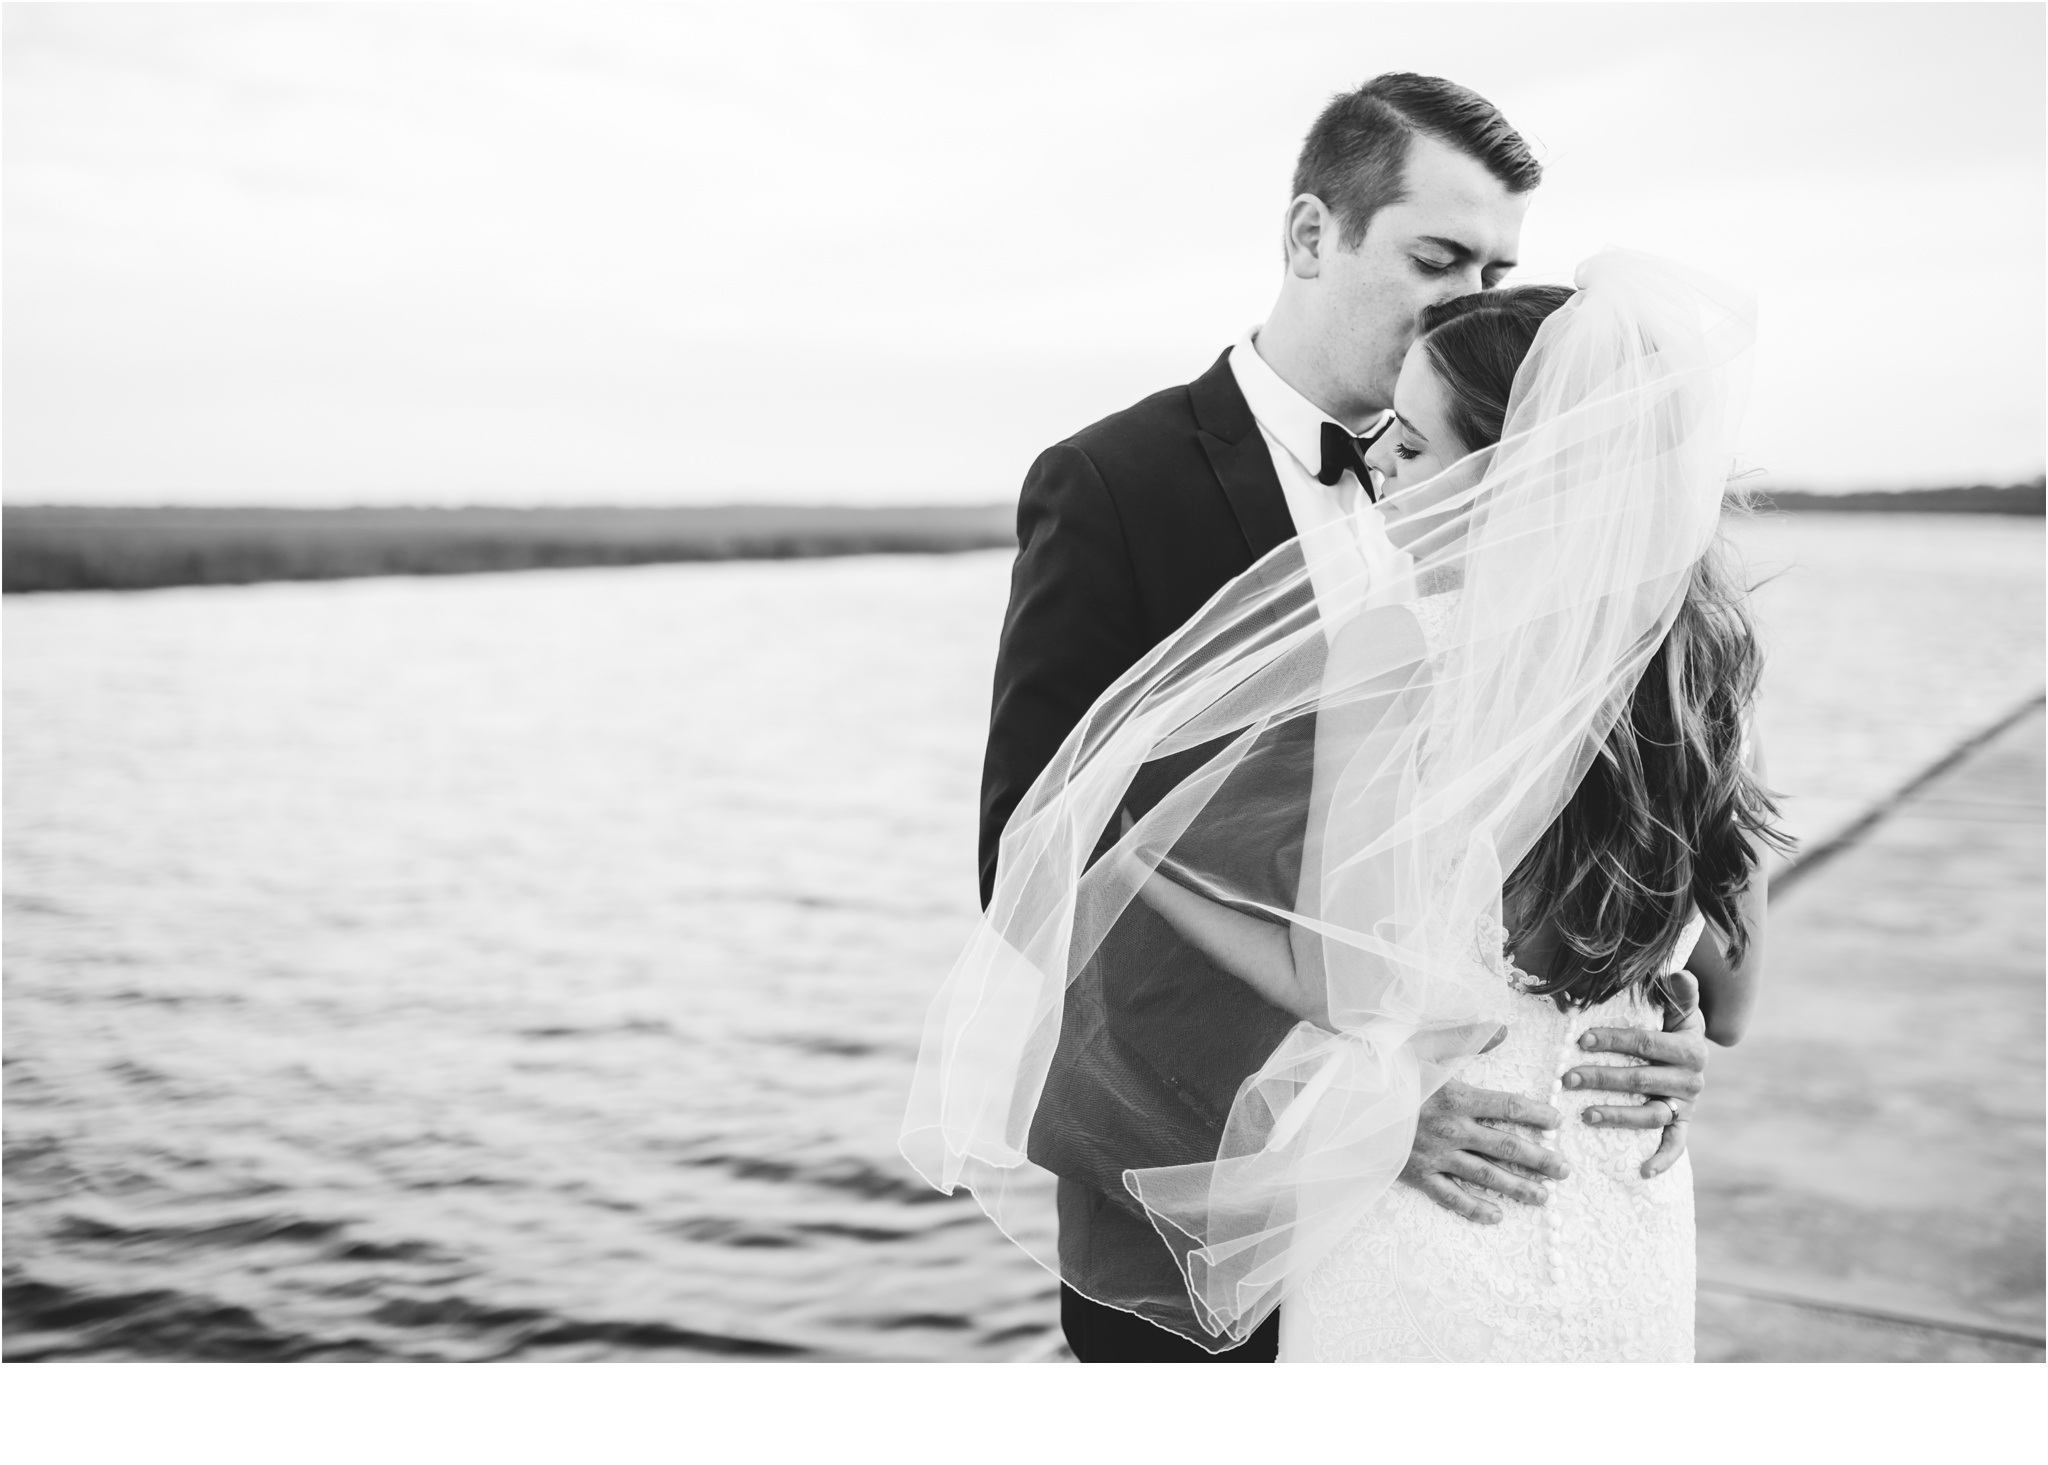 Rainey_Gregg_Photography_St._Simons_Island_Georgia_California_Wedding_Portrait_Photography_0877.jpg